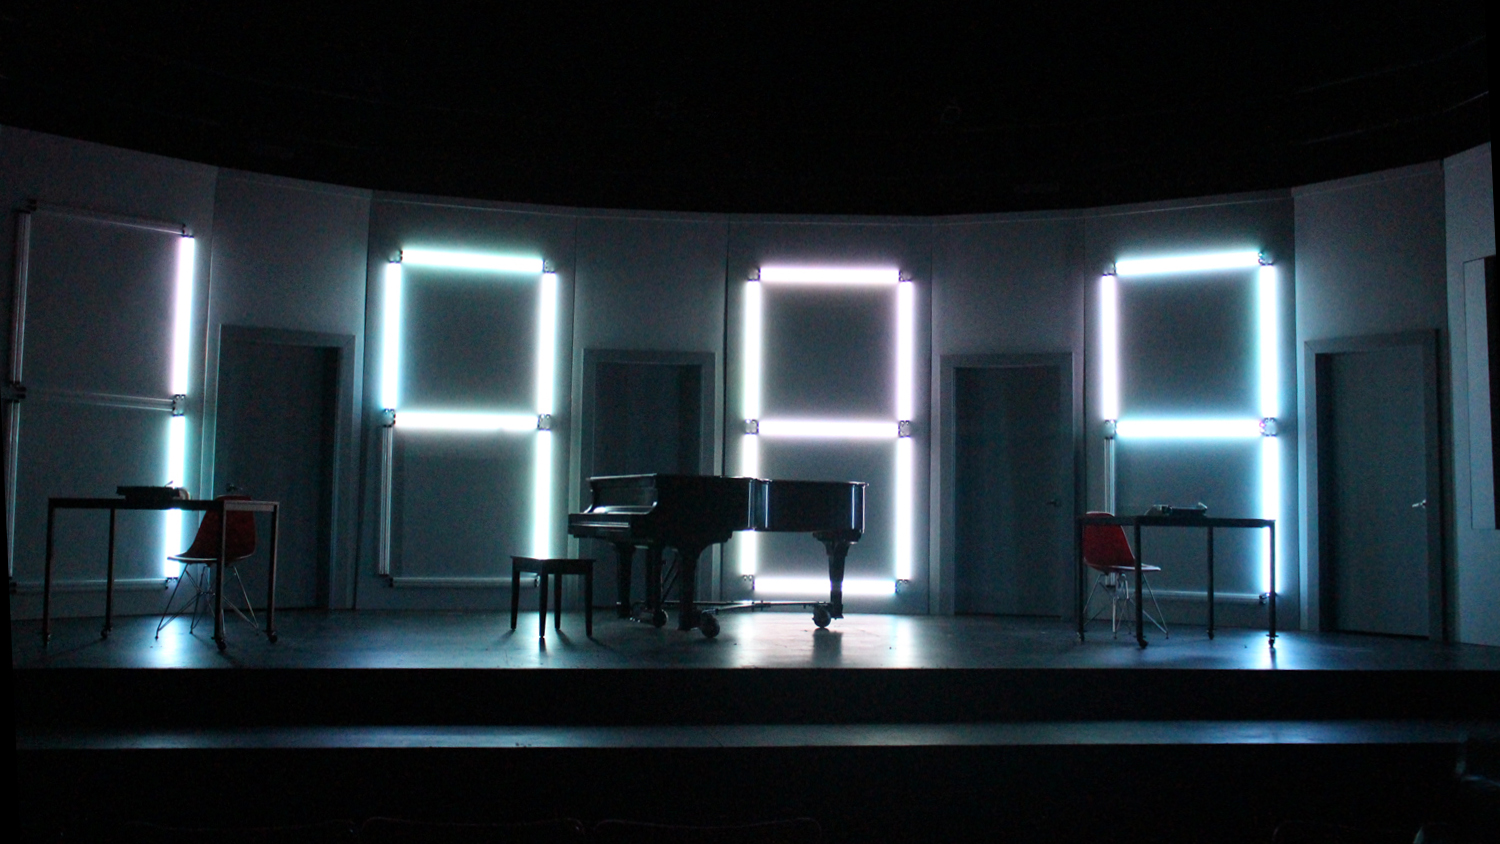 Preshow - clock starts to count down